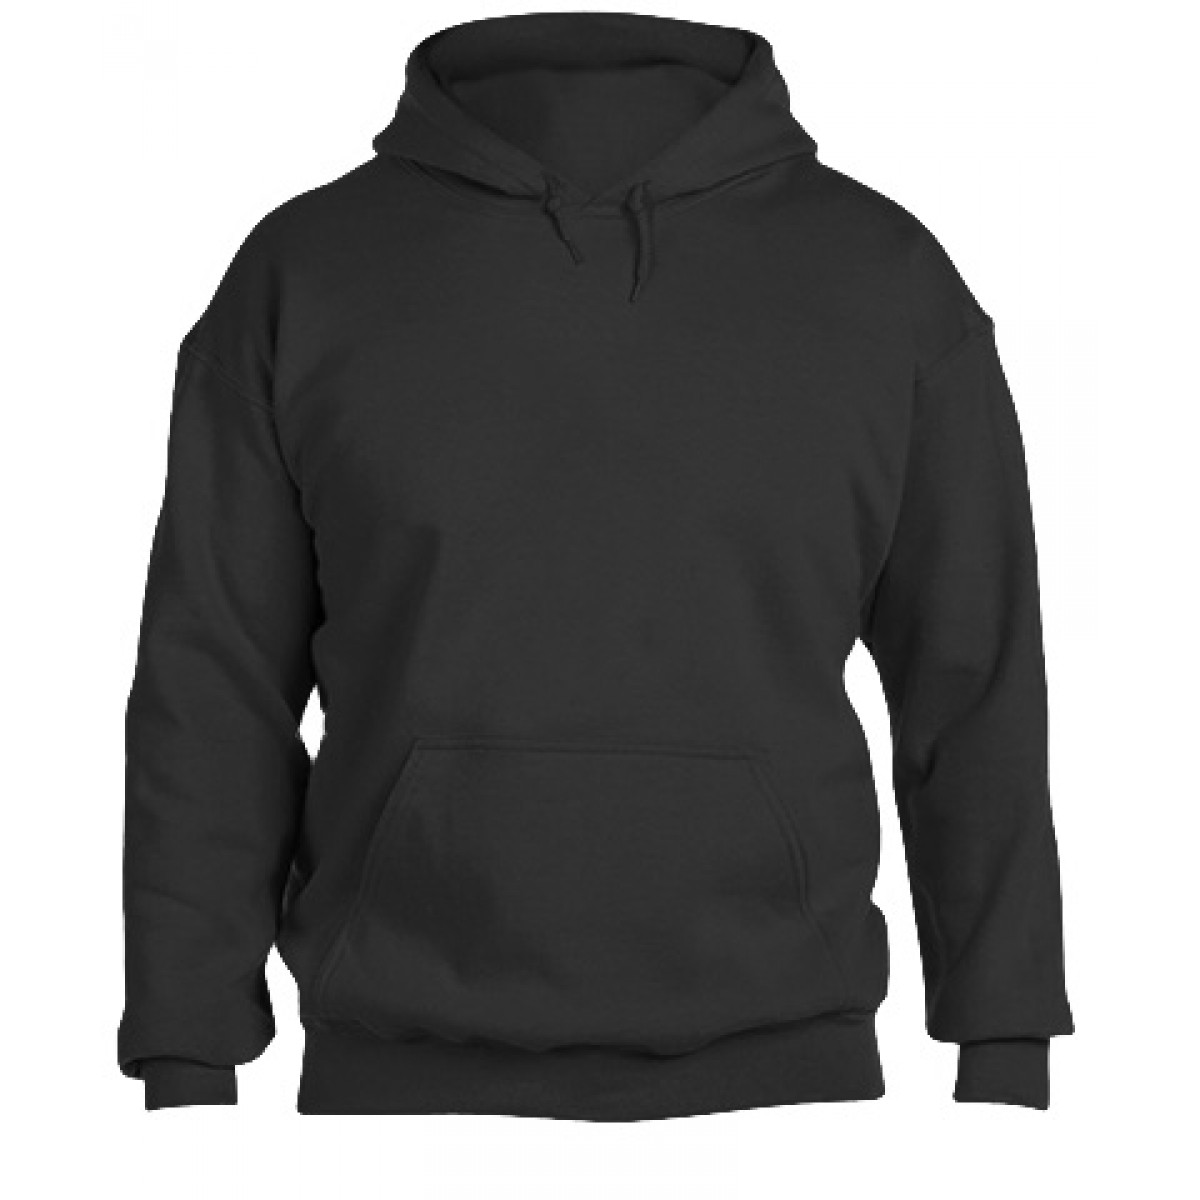 Hooded Sweatshirt 50/50 Heavy Blend -Black-M